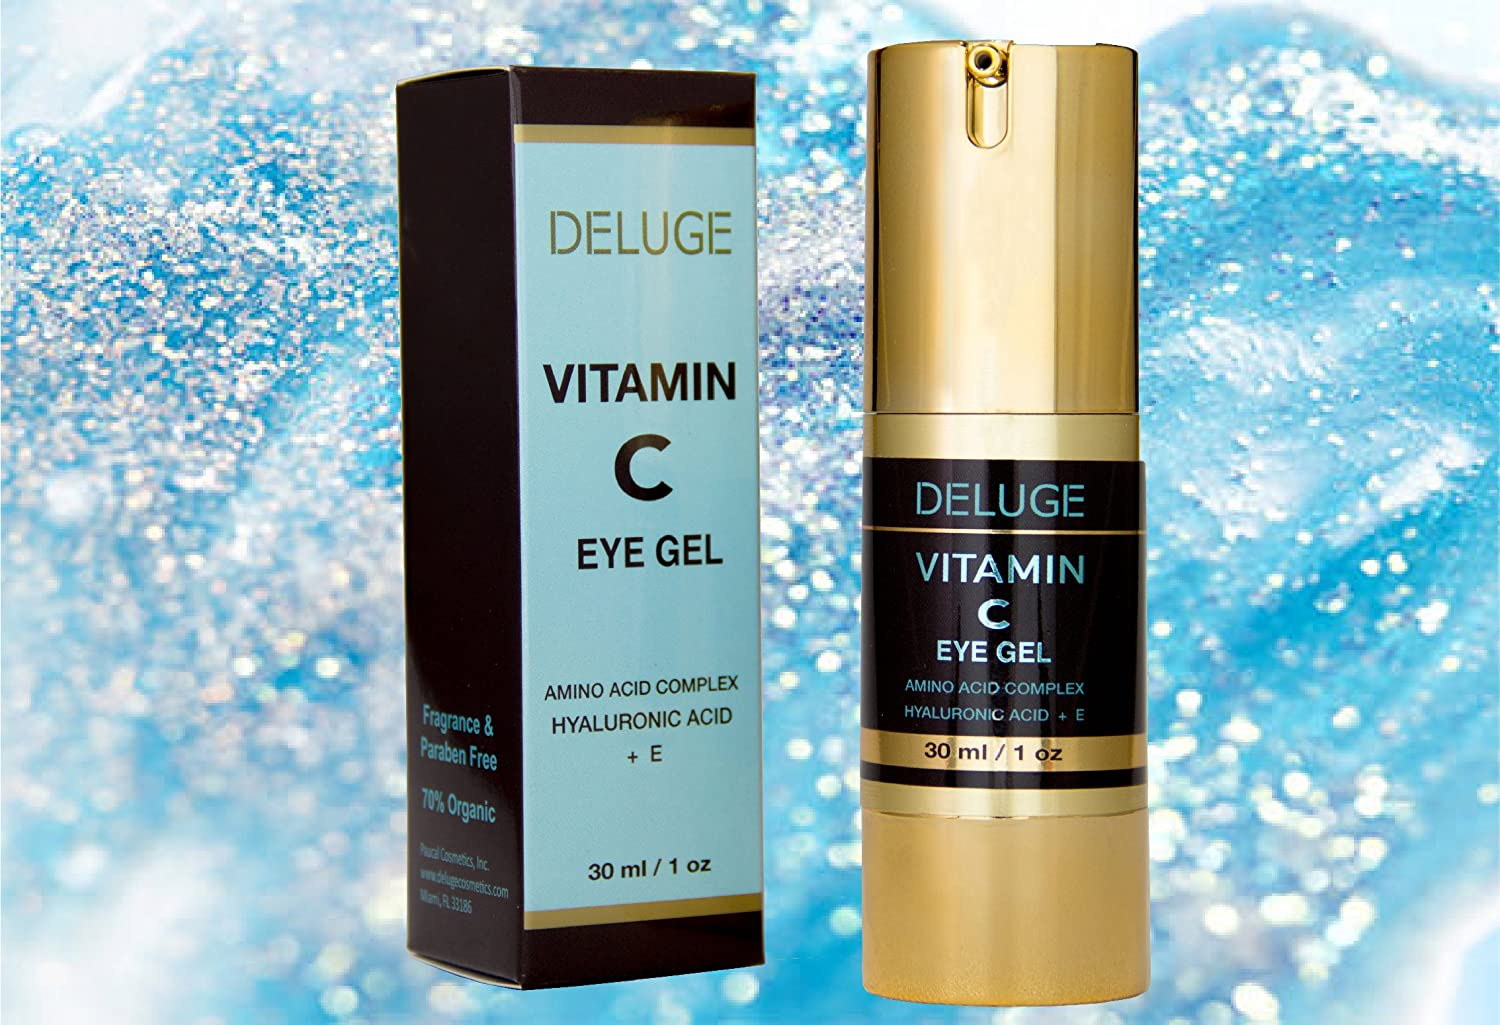 Amazon.com: DELUGE -Vitamin C Eye Gel with Hyaluronic Acid + E + Amino Acid Complex. Dark Circles, Puffiness, Bags and Wrinkles: Beauty